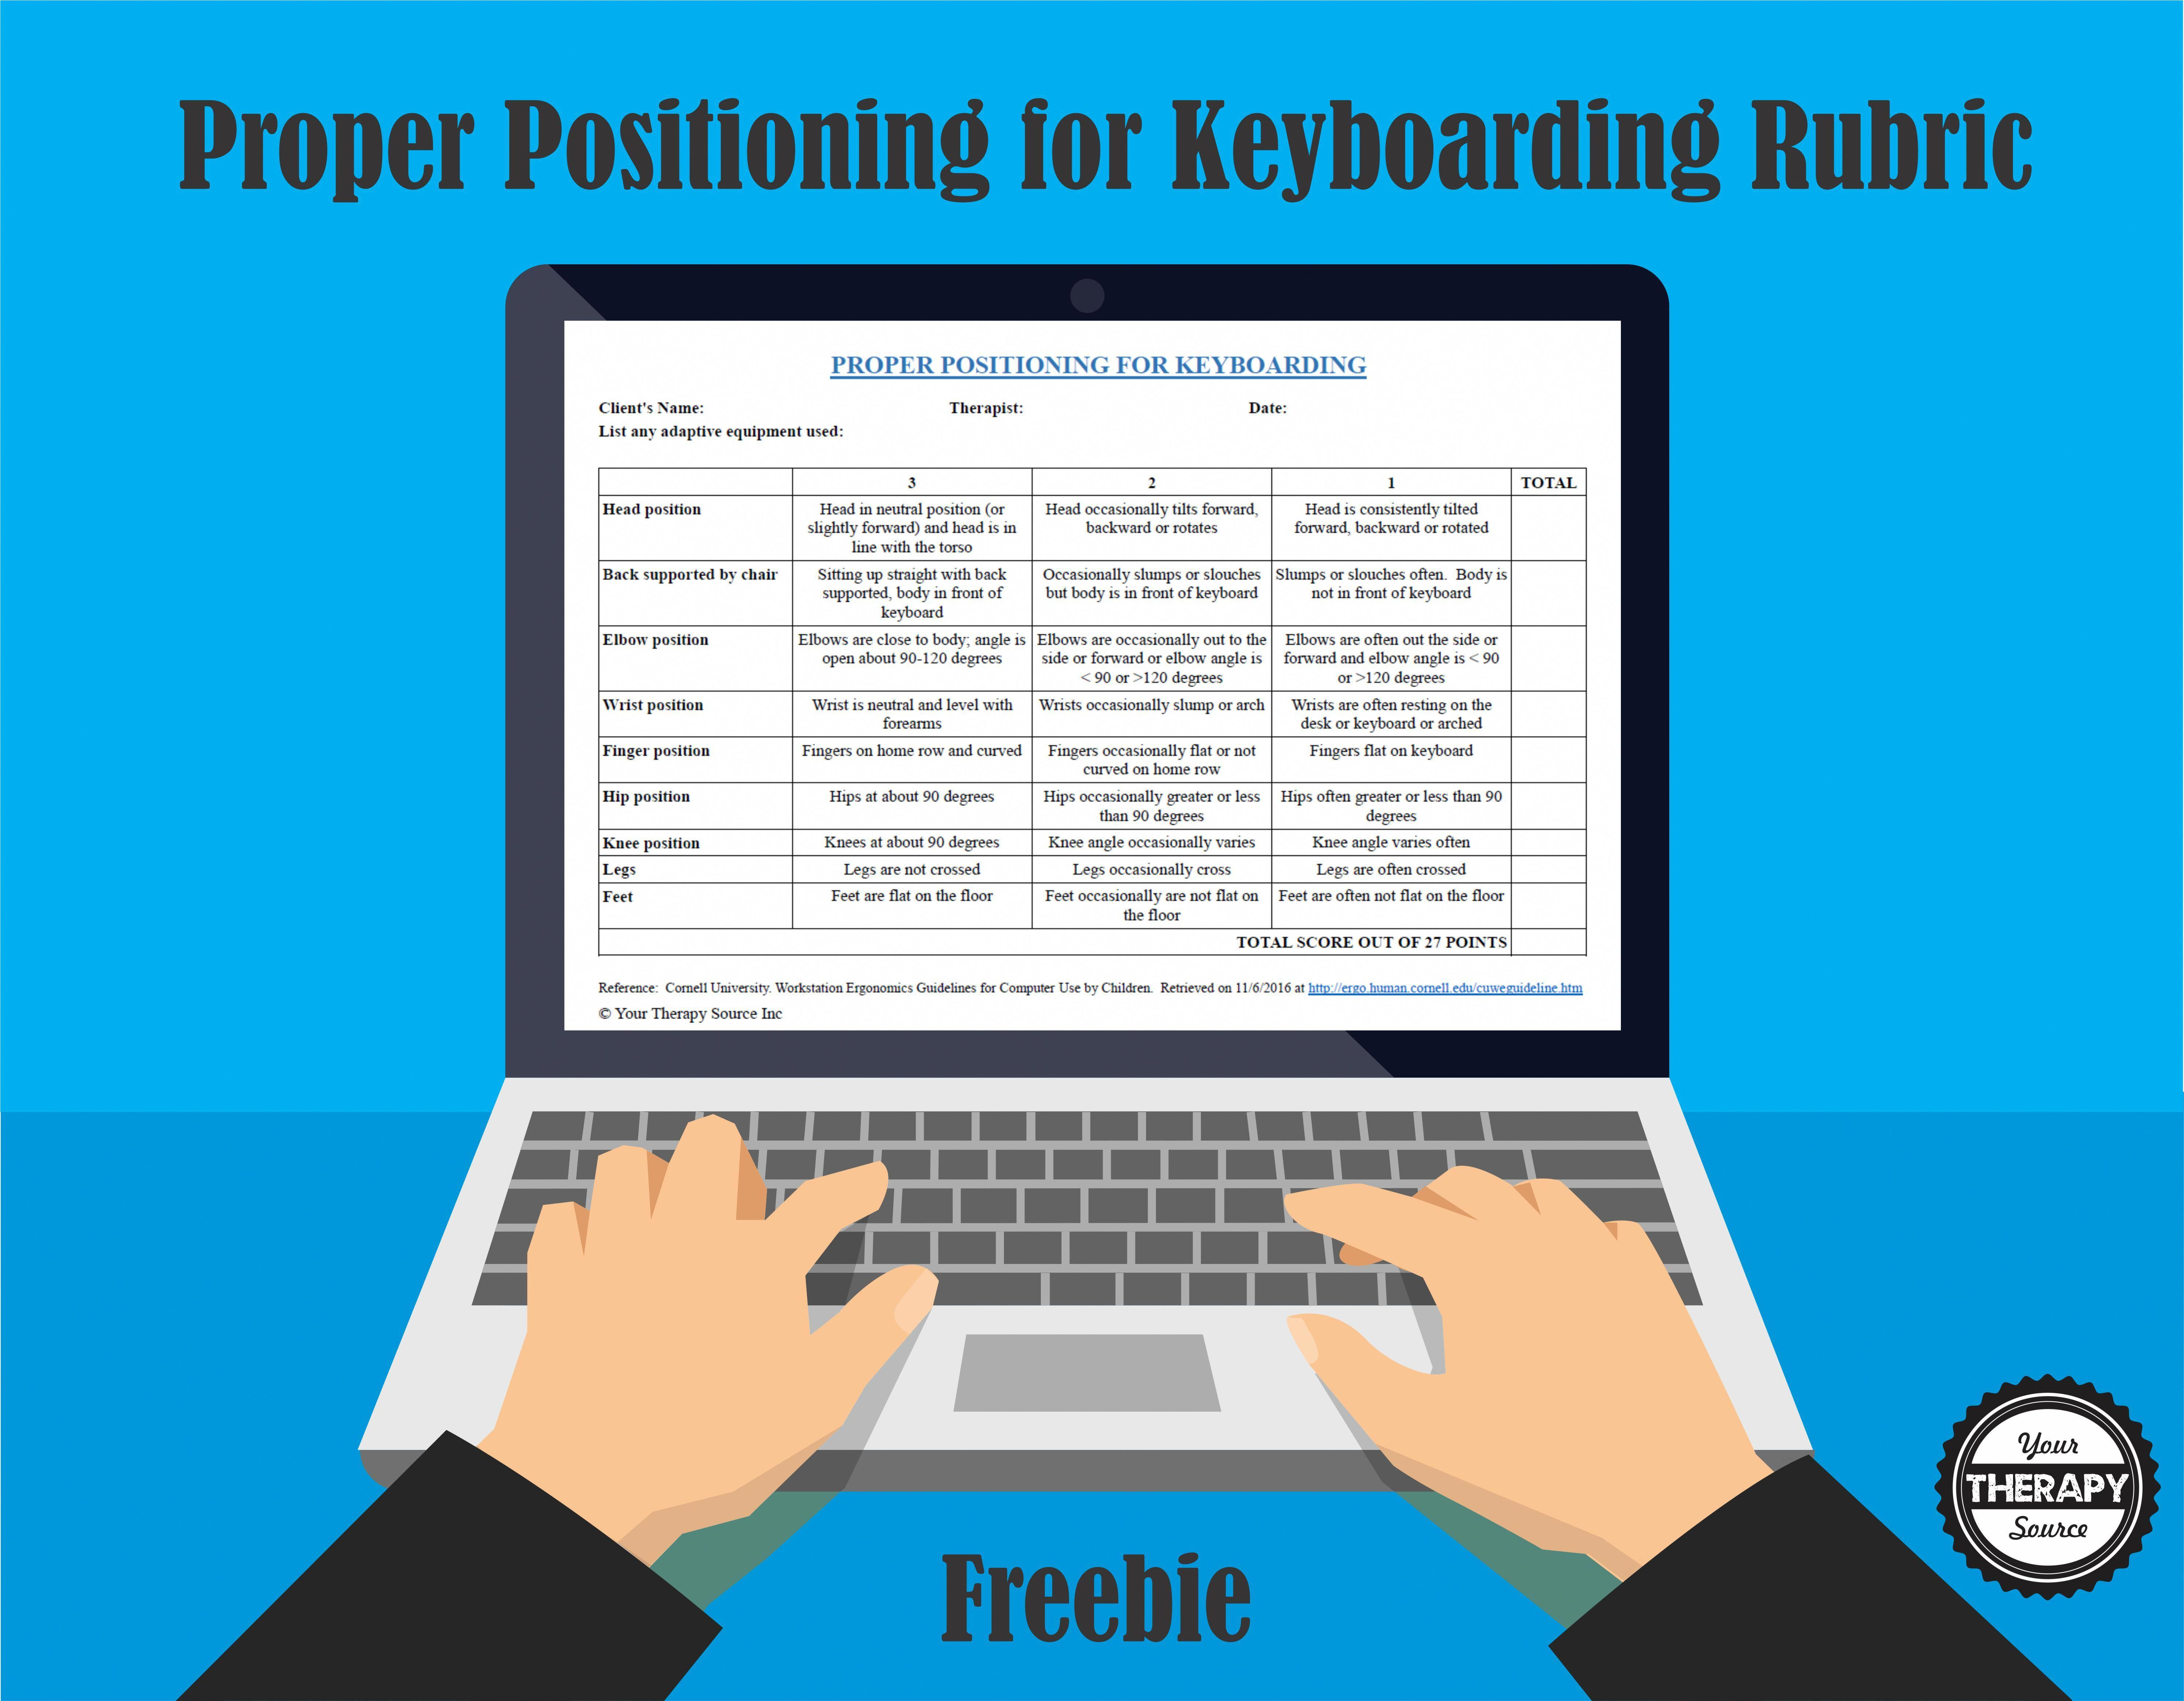 Proper Positioning For Keyboarding Rubric From The